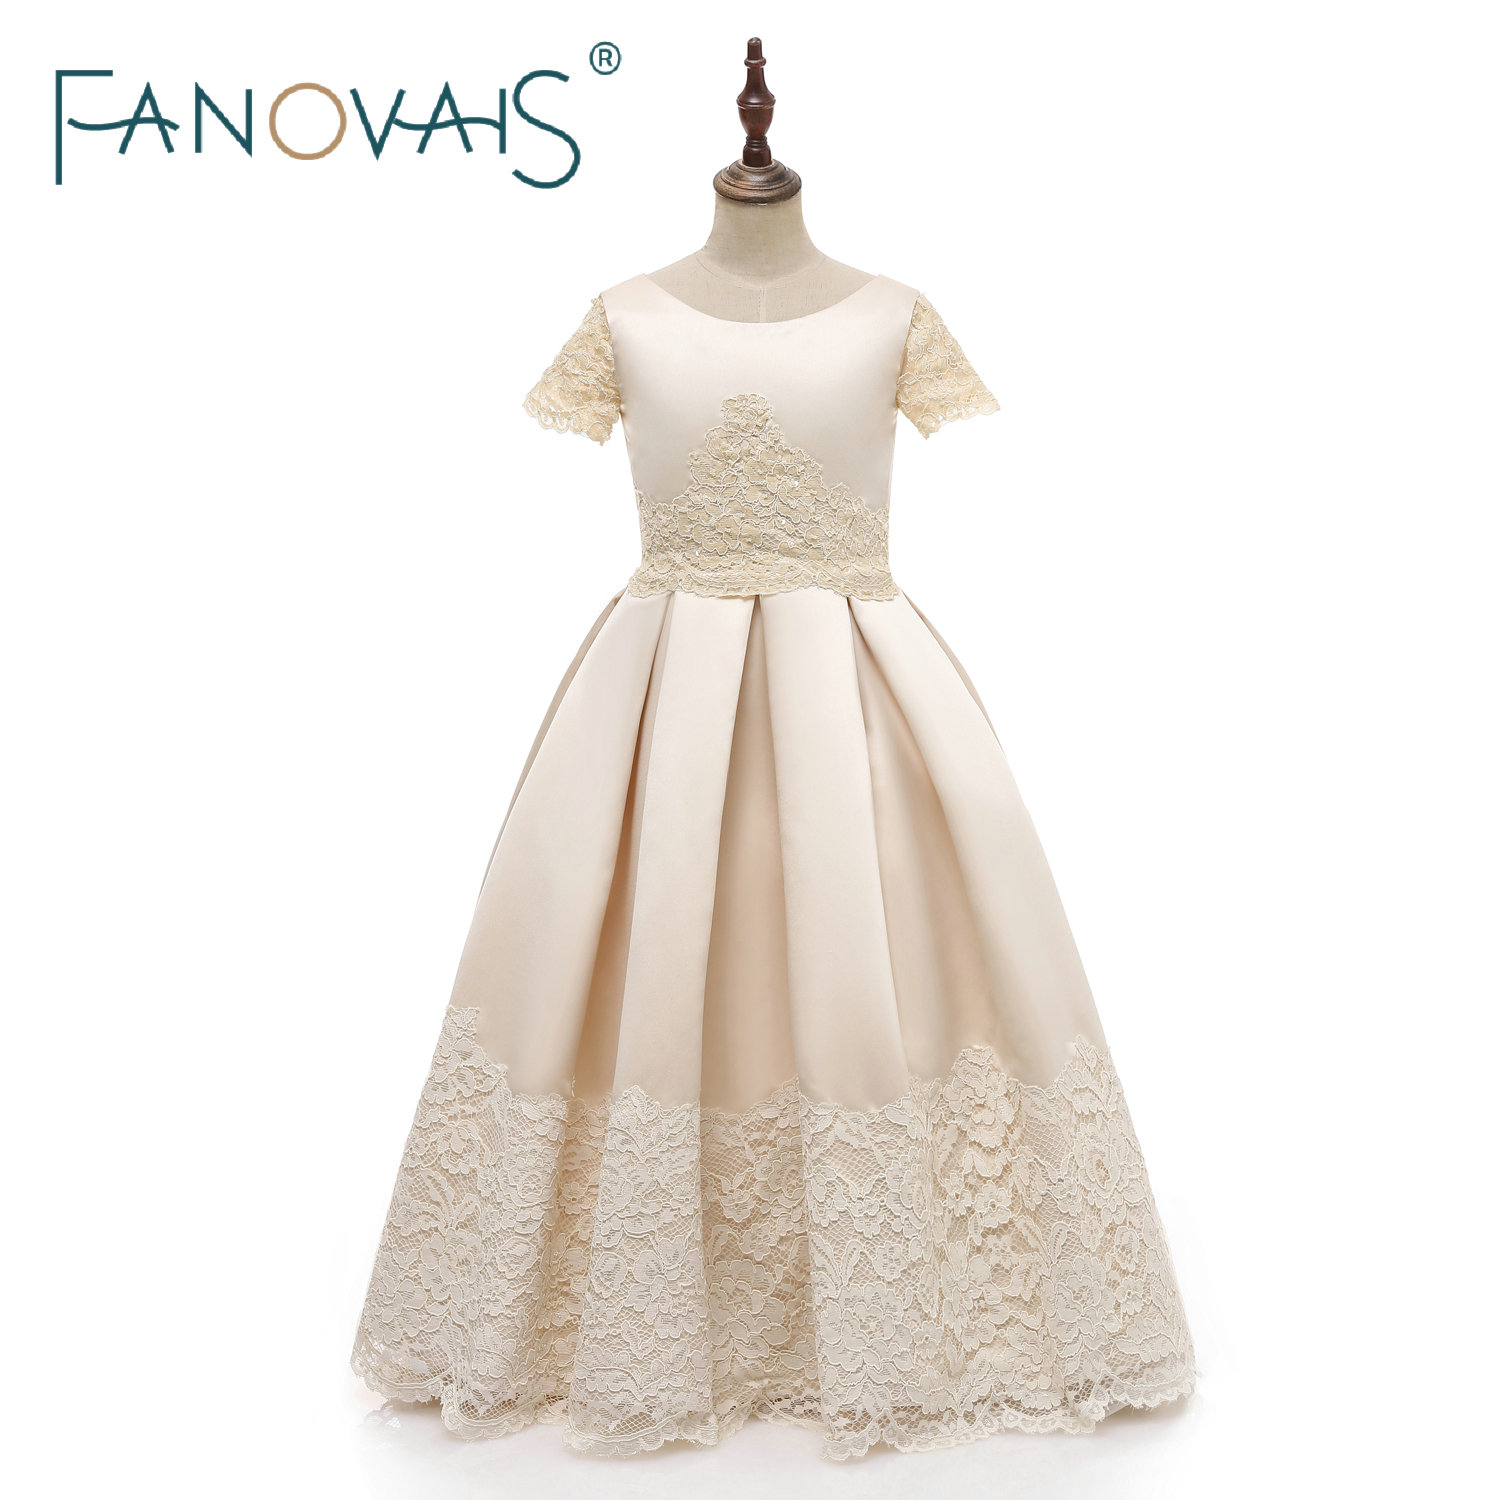 Champagne Flower Girl Dresses Kid Special Occasion Dress for Wedding Lace Party Dress Short Sleeves Flower Girl Dress